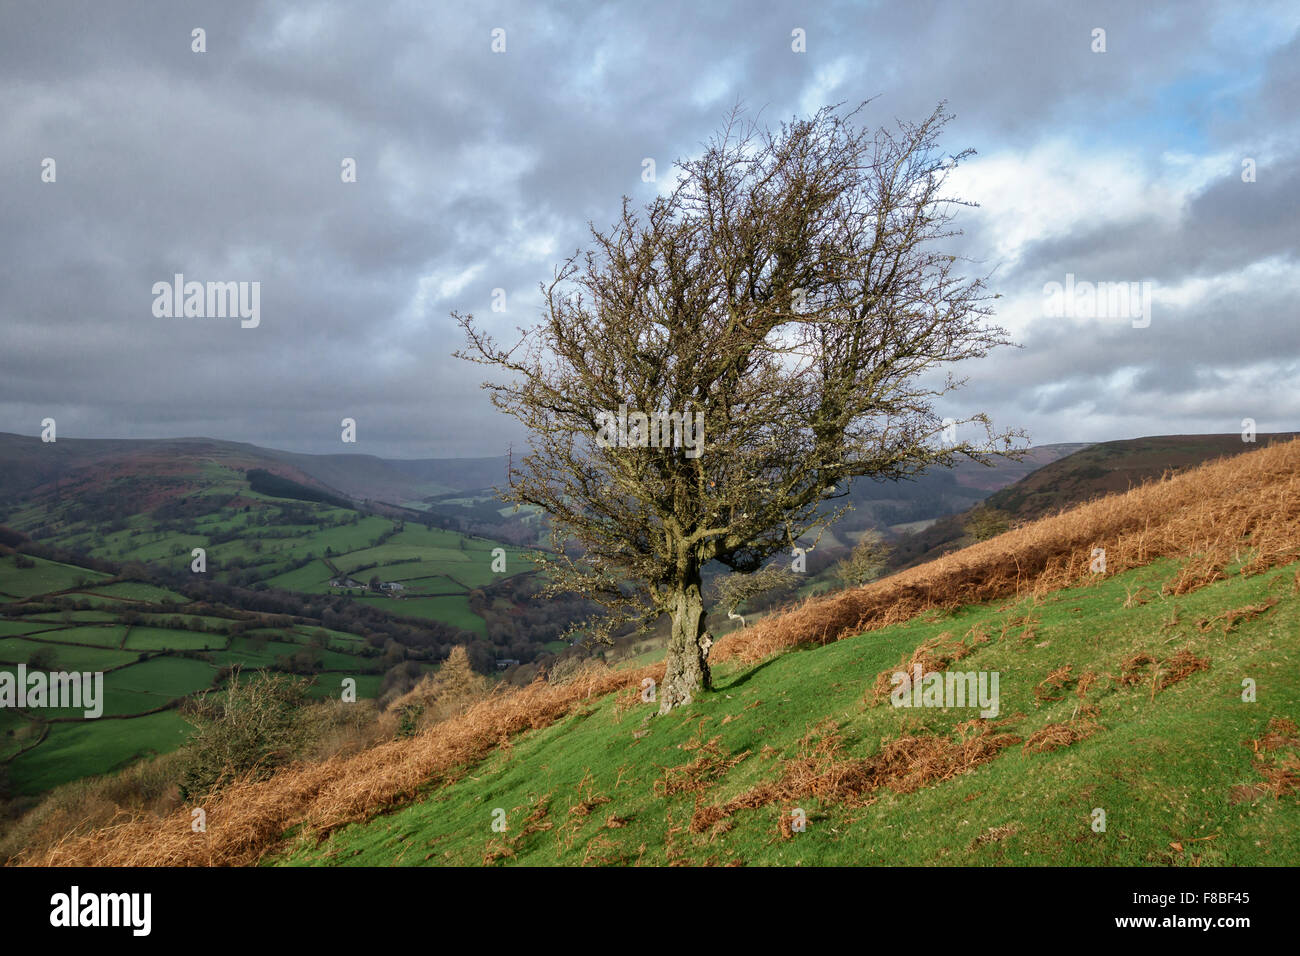 A solitary hawthorn tree above the village of Llanbedr near Crickhowell, Powys, Wales, UK, in the Black Mountains. - Stock Image